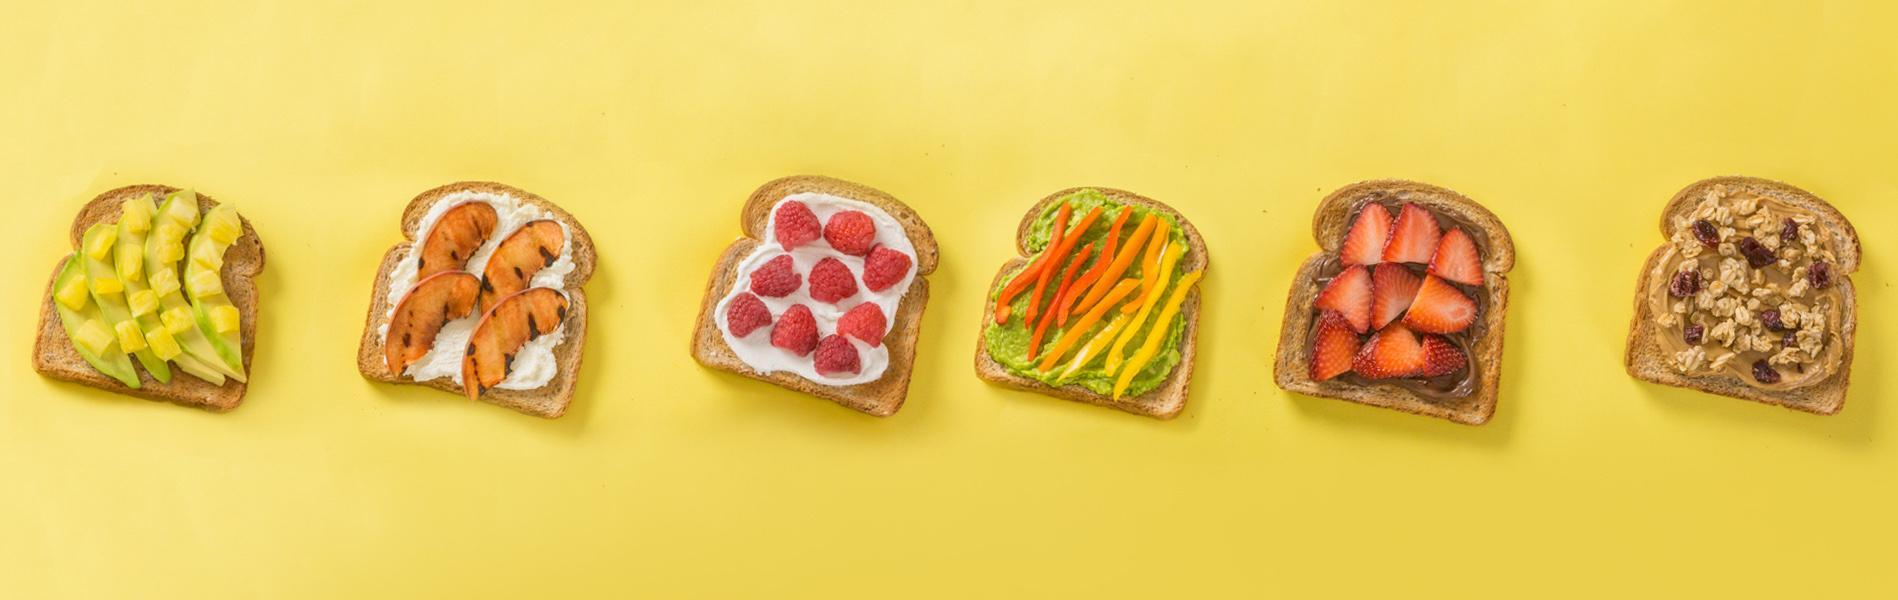 Variety of fruits, avocado and spreads on toast